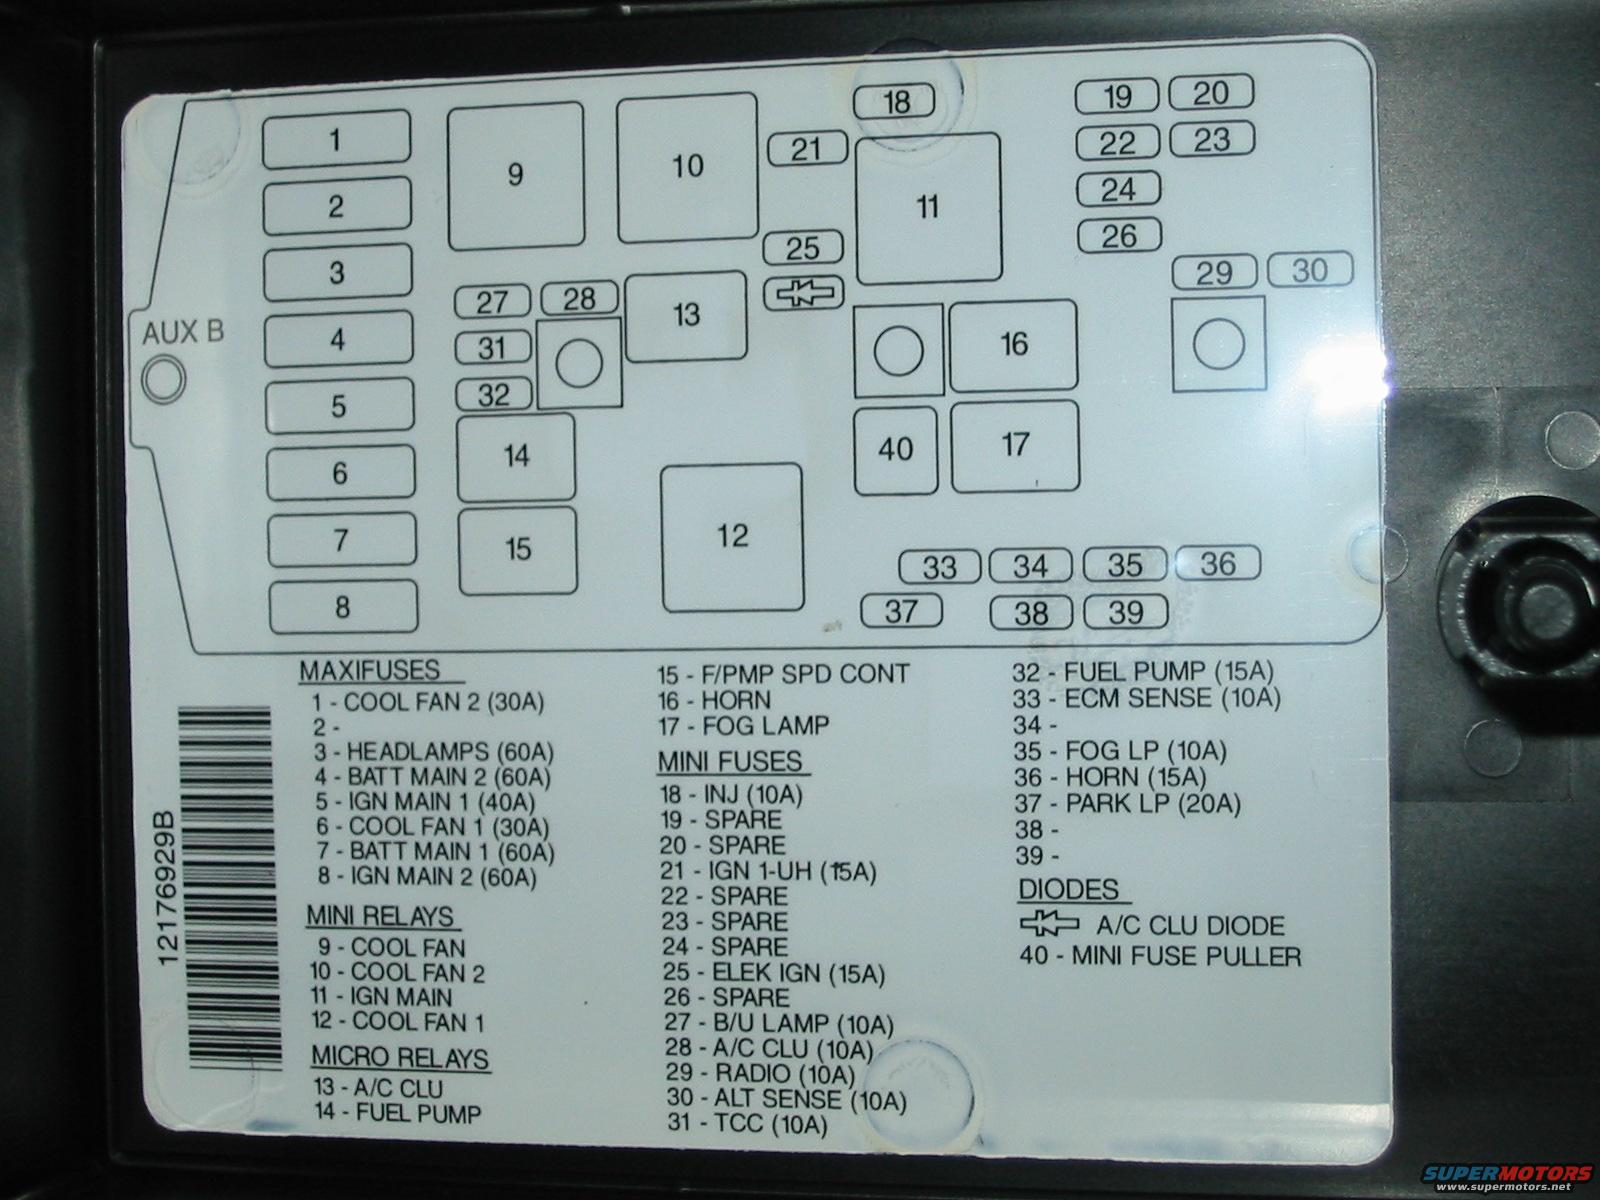 2007 Peterbilt Fuse Box Diagram Wiring Library Ctp713b Mack Todayspeterbilt 379 Diagrams